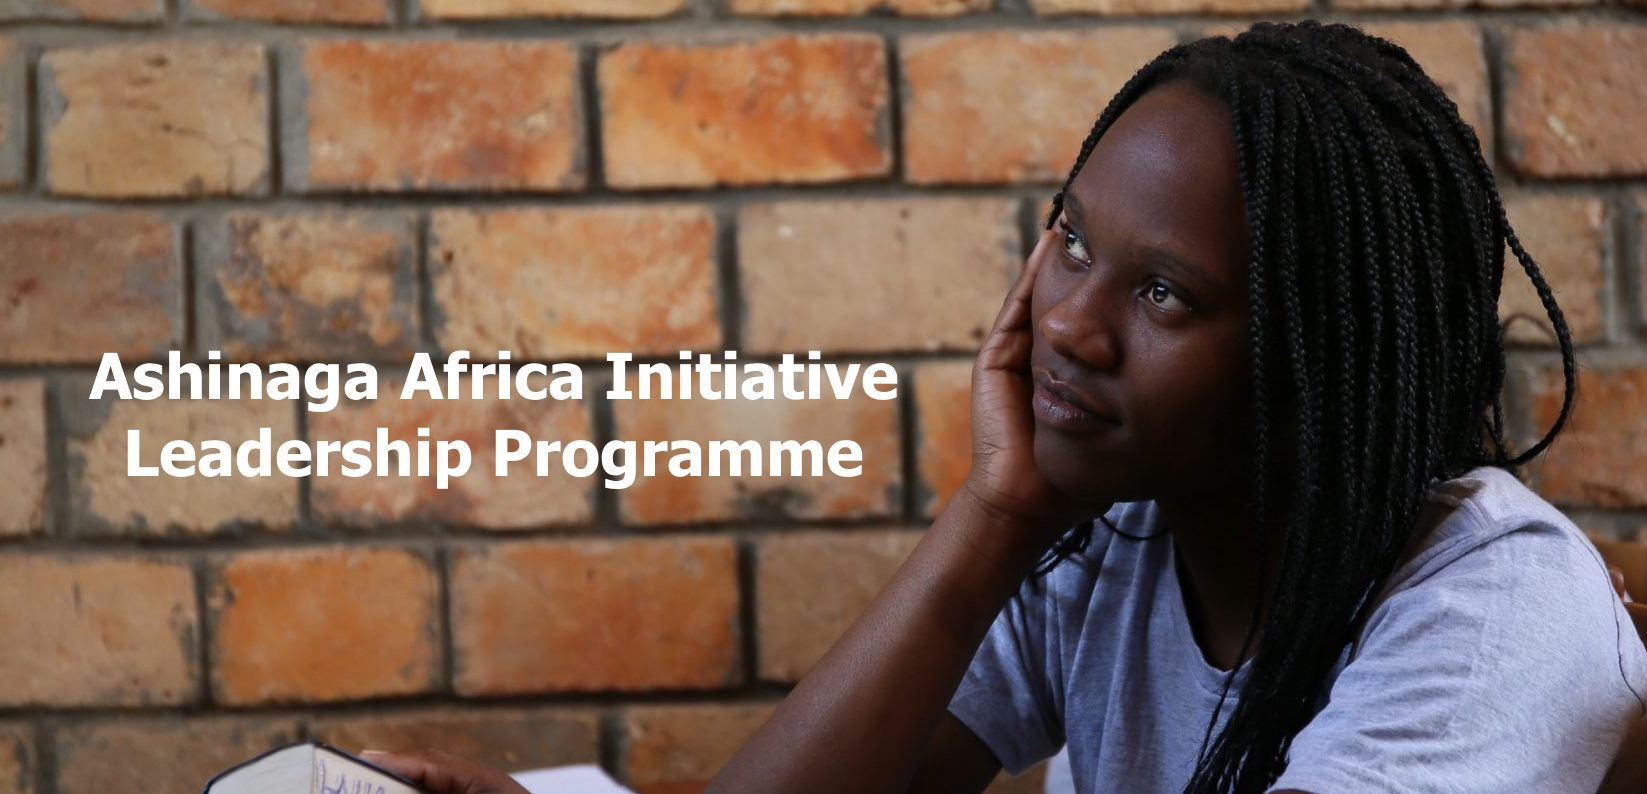 Apply for Ashinaga Africa Initiative Leadership Programme 2018 (Full financial Support to Study Abroad)